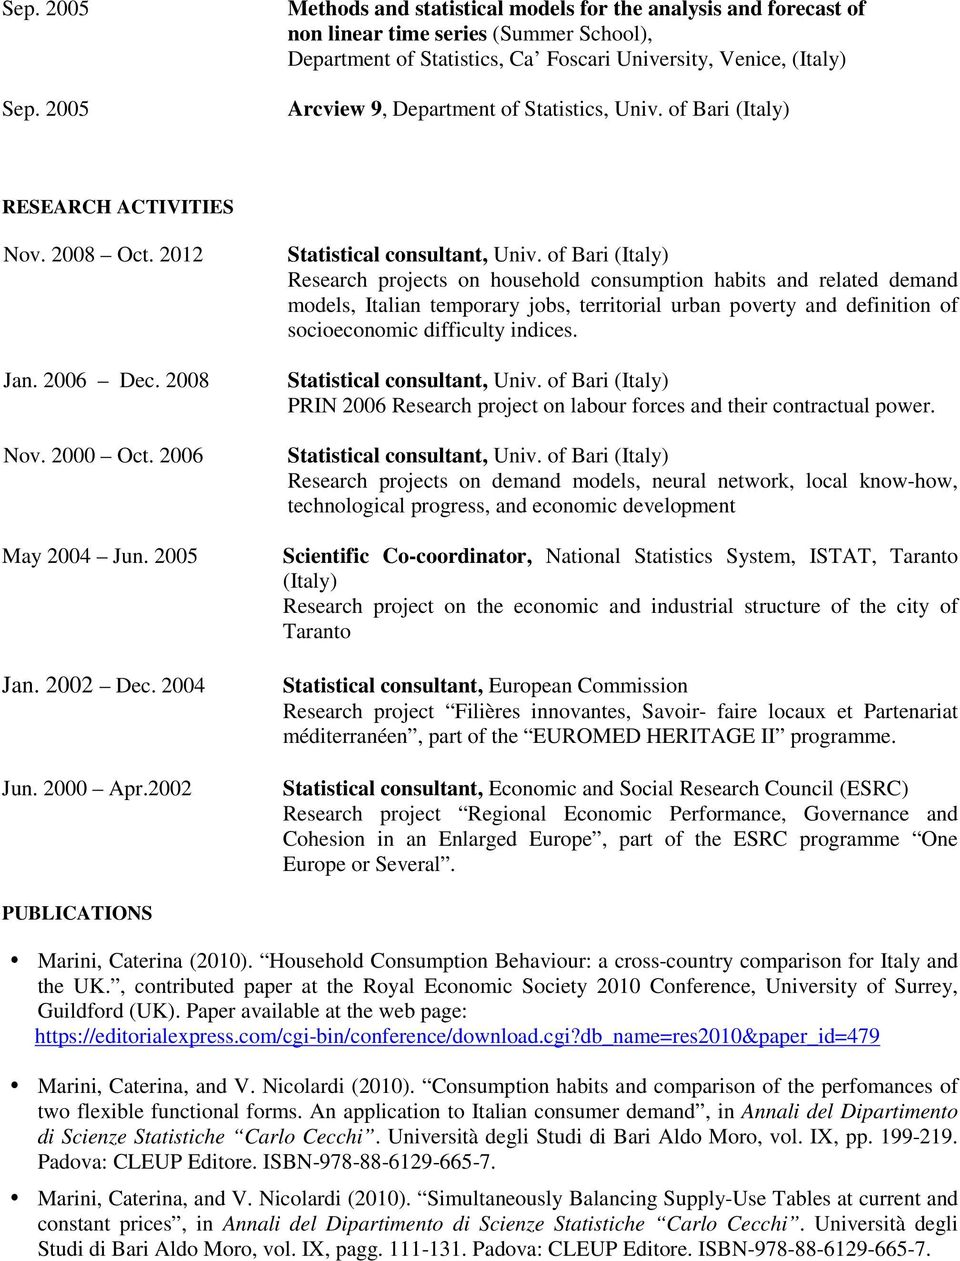 Statistics, Univ. of Bari (Italy) RESEARCH ACTIVITIES Nov. 2008 Oct. 2012 Jan. 2006 Dec. 2008 Nov. 2000 Oct. 2006 May 2004 Jun. 2005 Jan. 2002 Dec. 2004 Jun. 2000 Apr.